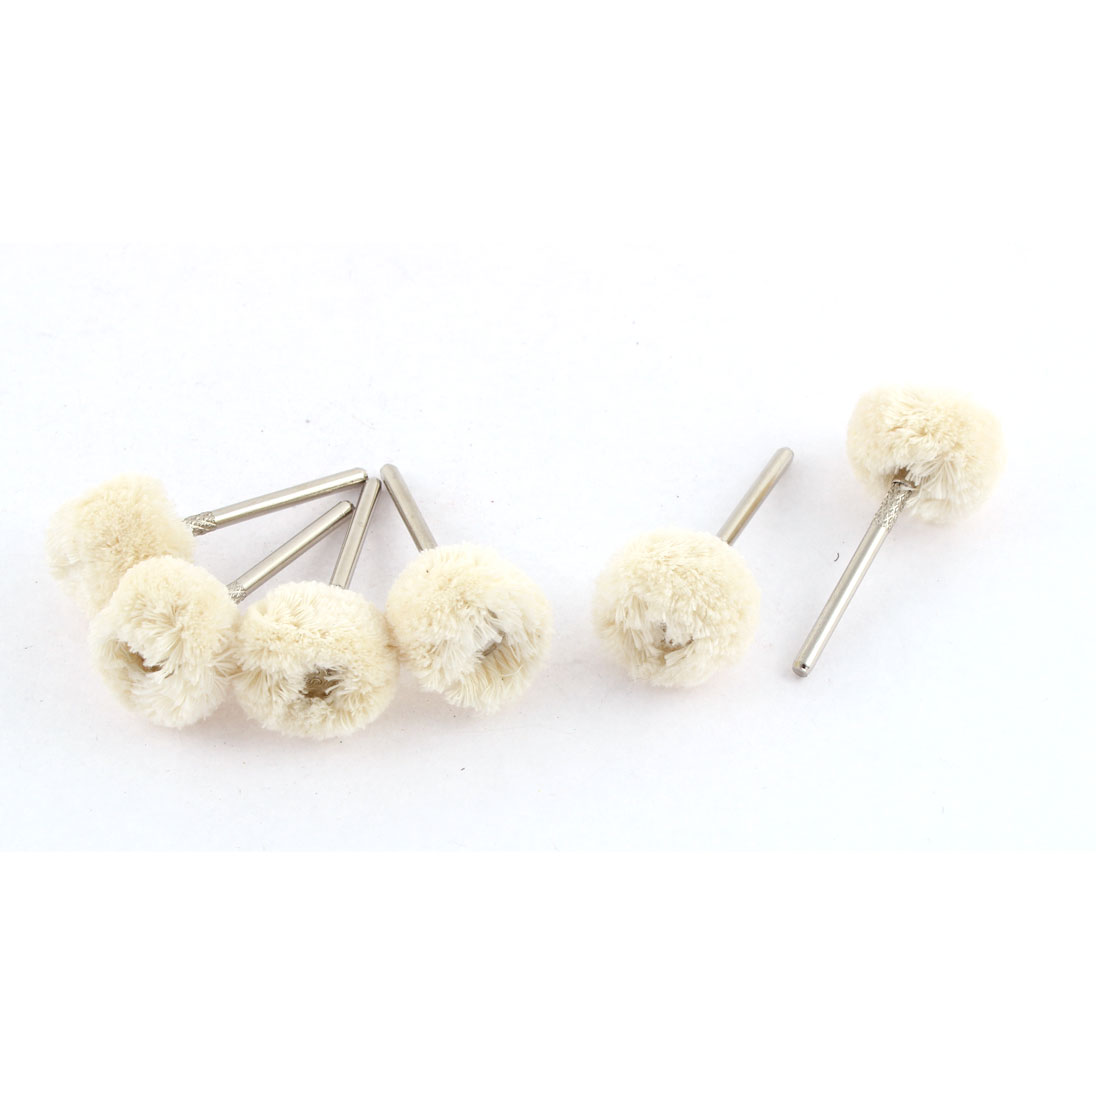 20mm Dia Soft Wool Rotary Tool Jewellery Buffing Polishing Wheel Brush 6pcs